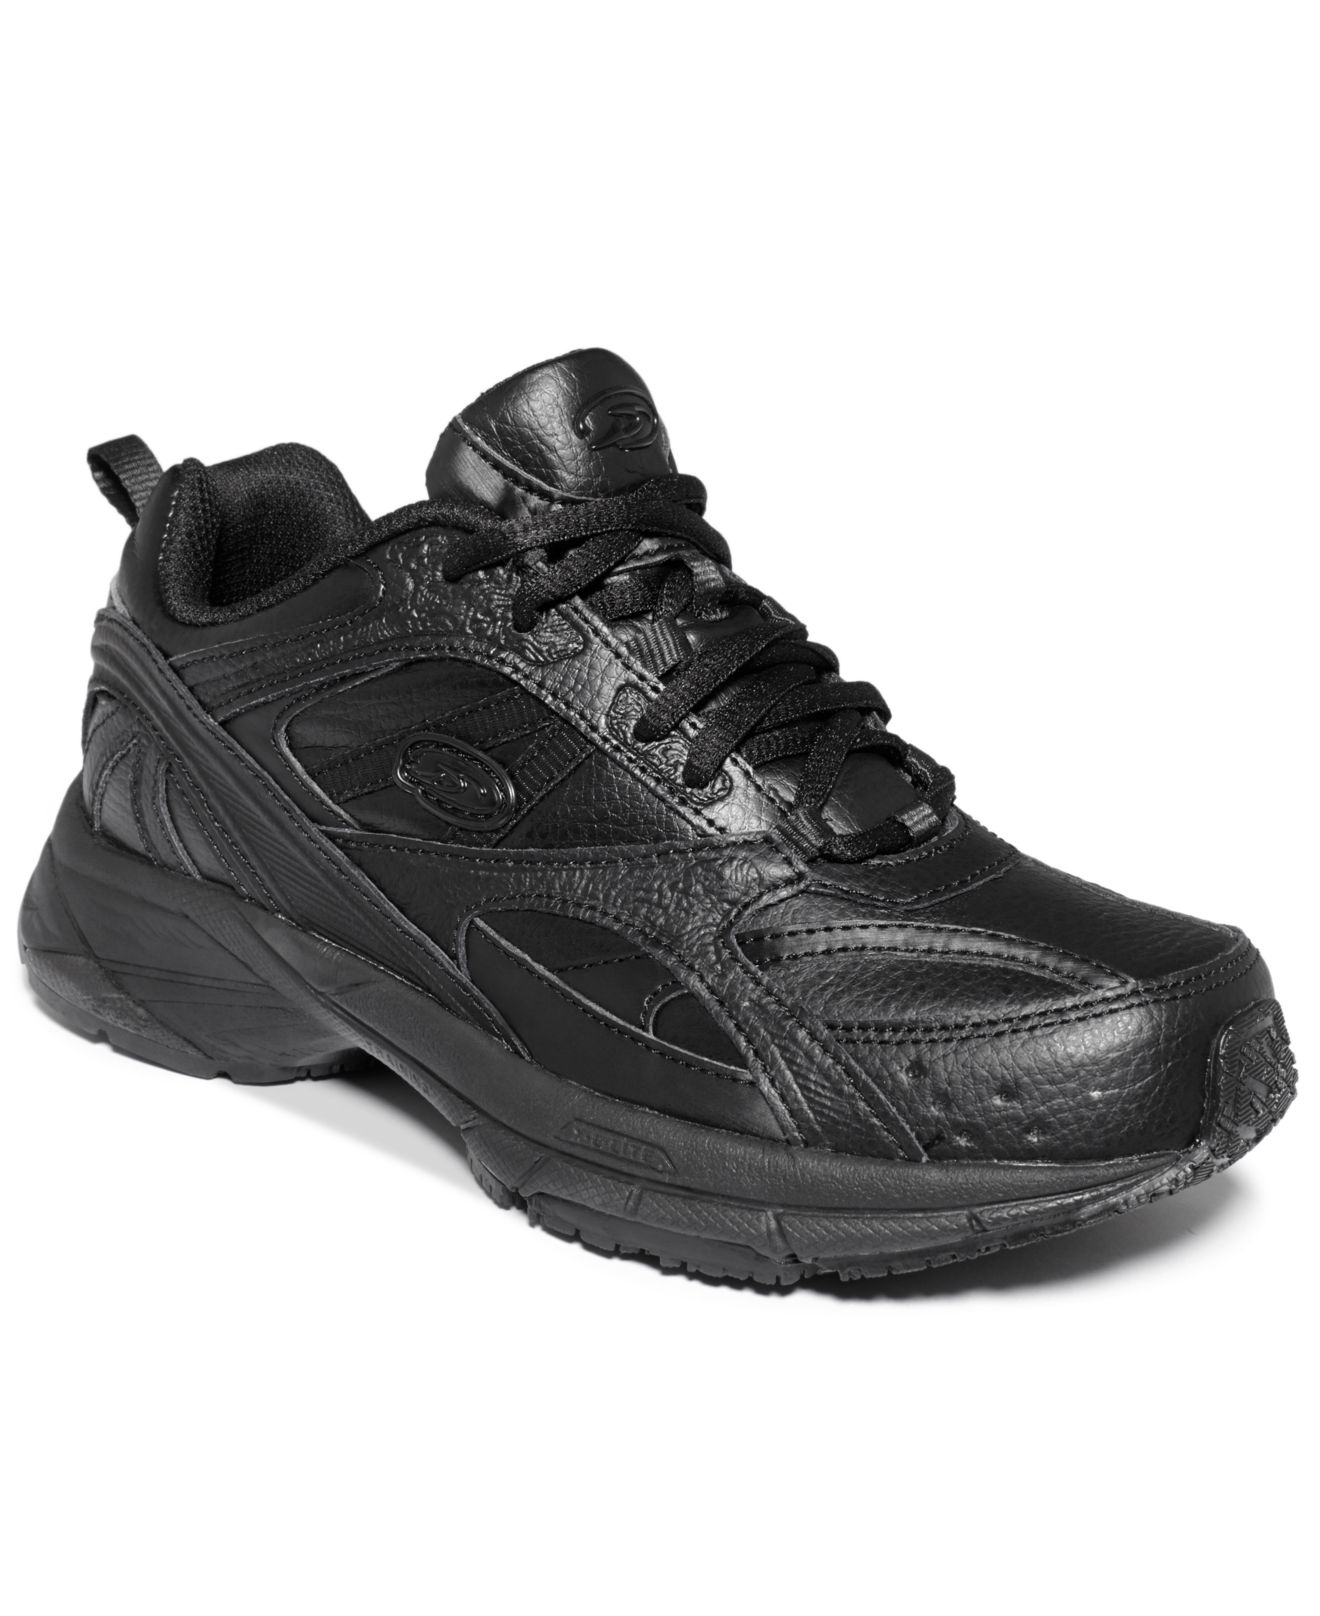 Slip Resistant Shoes Black Friday